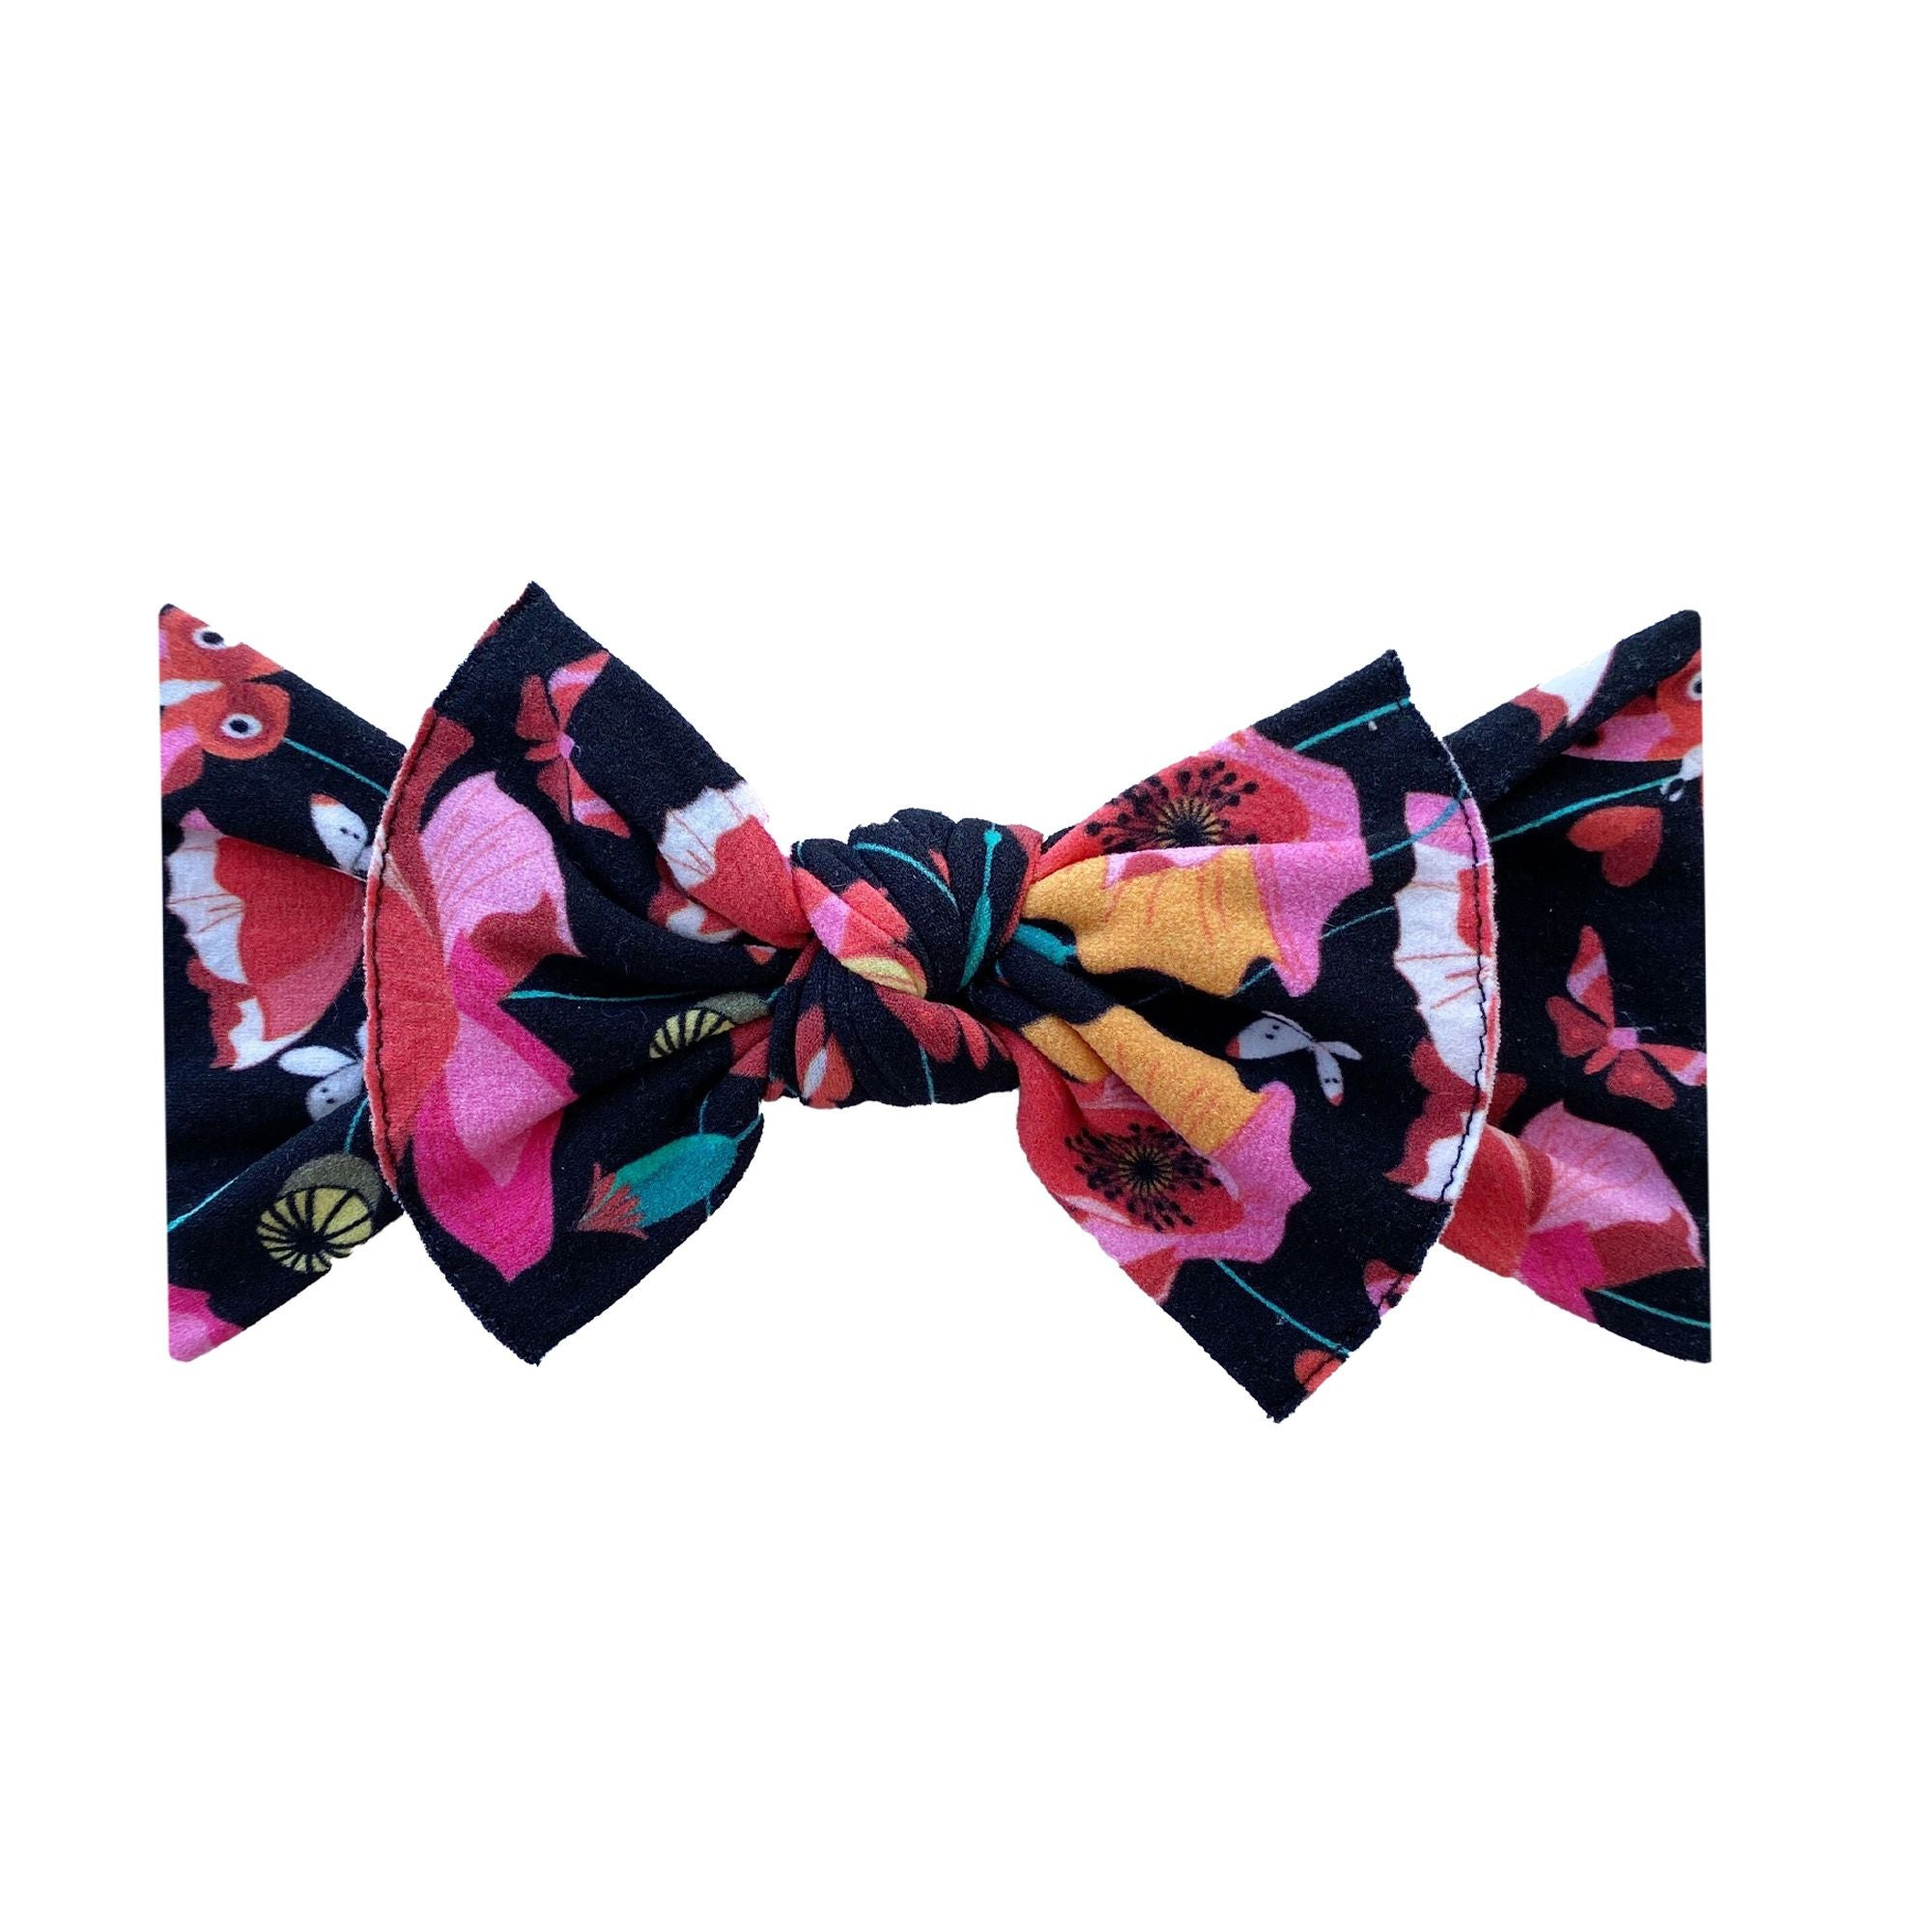 Snap Dragon Printed Knot Headband